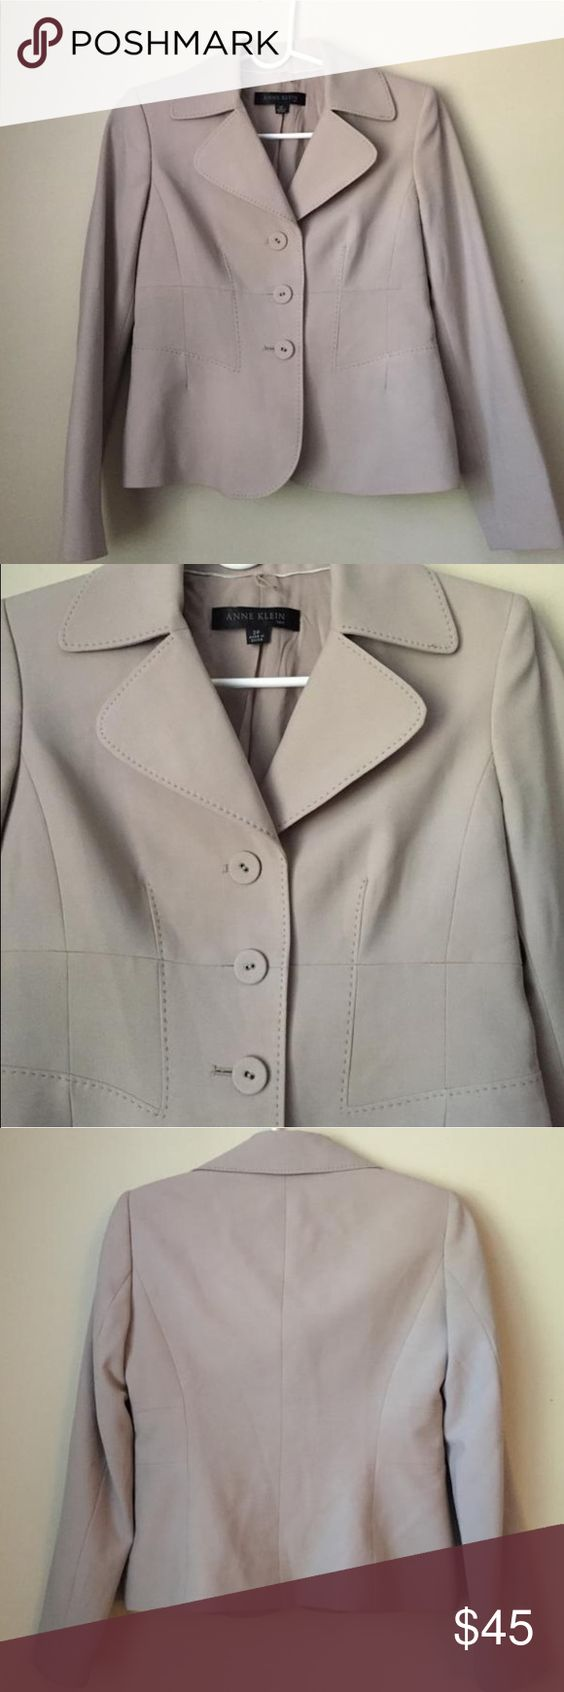 Anne Klein blazer. Excellent condition, like new! Anne Klein Jackets & Coats Blazers